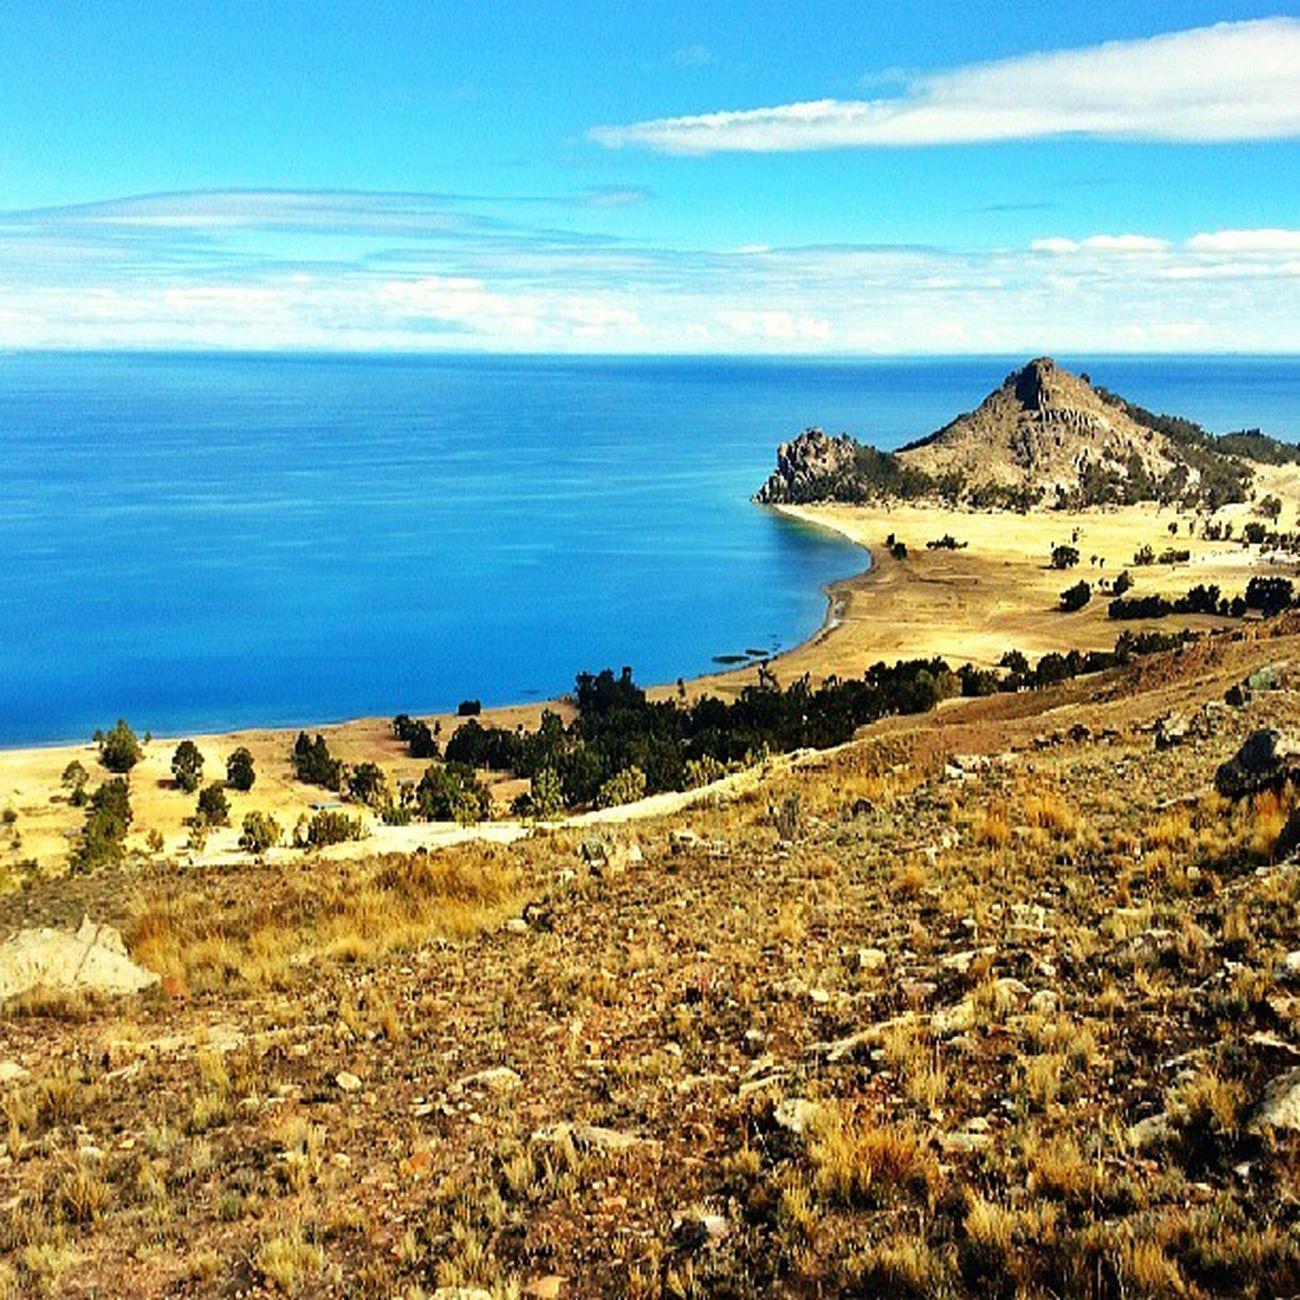 View of LagoTiticaca